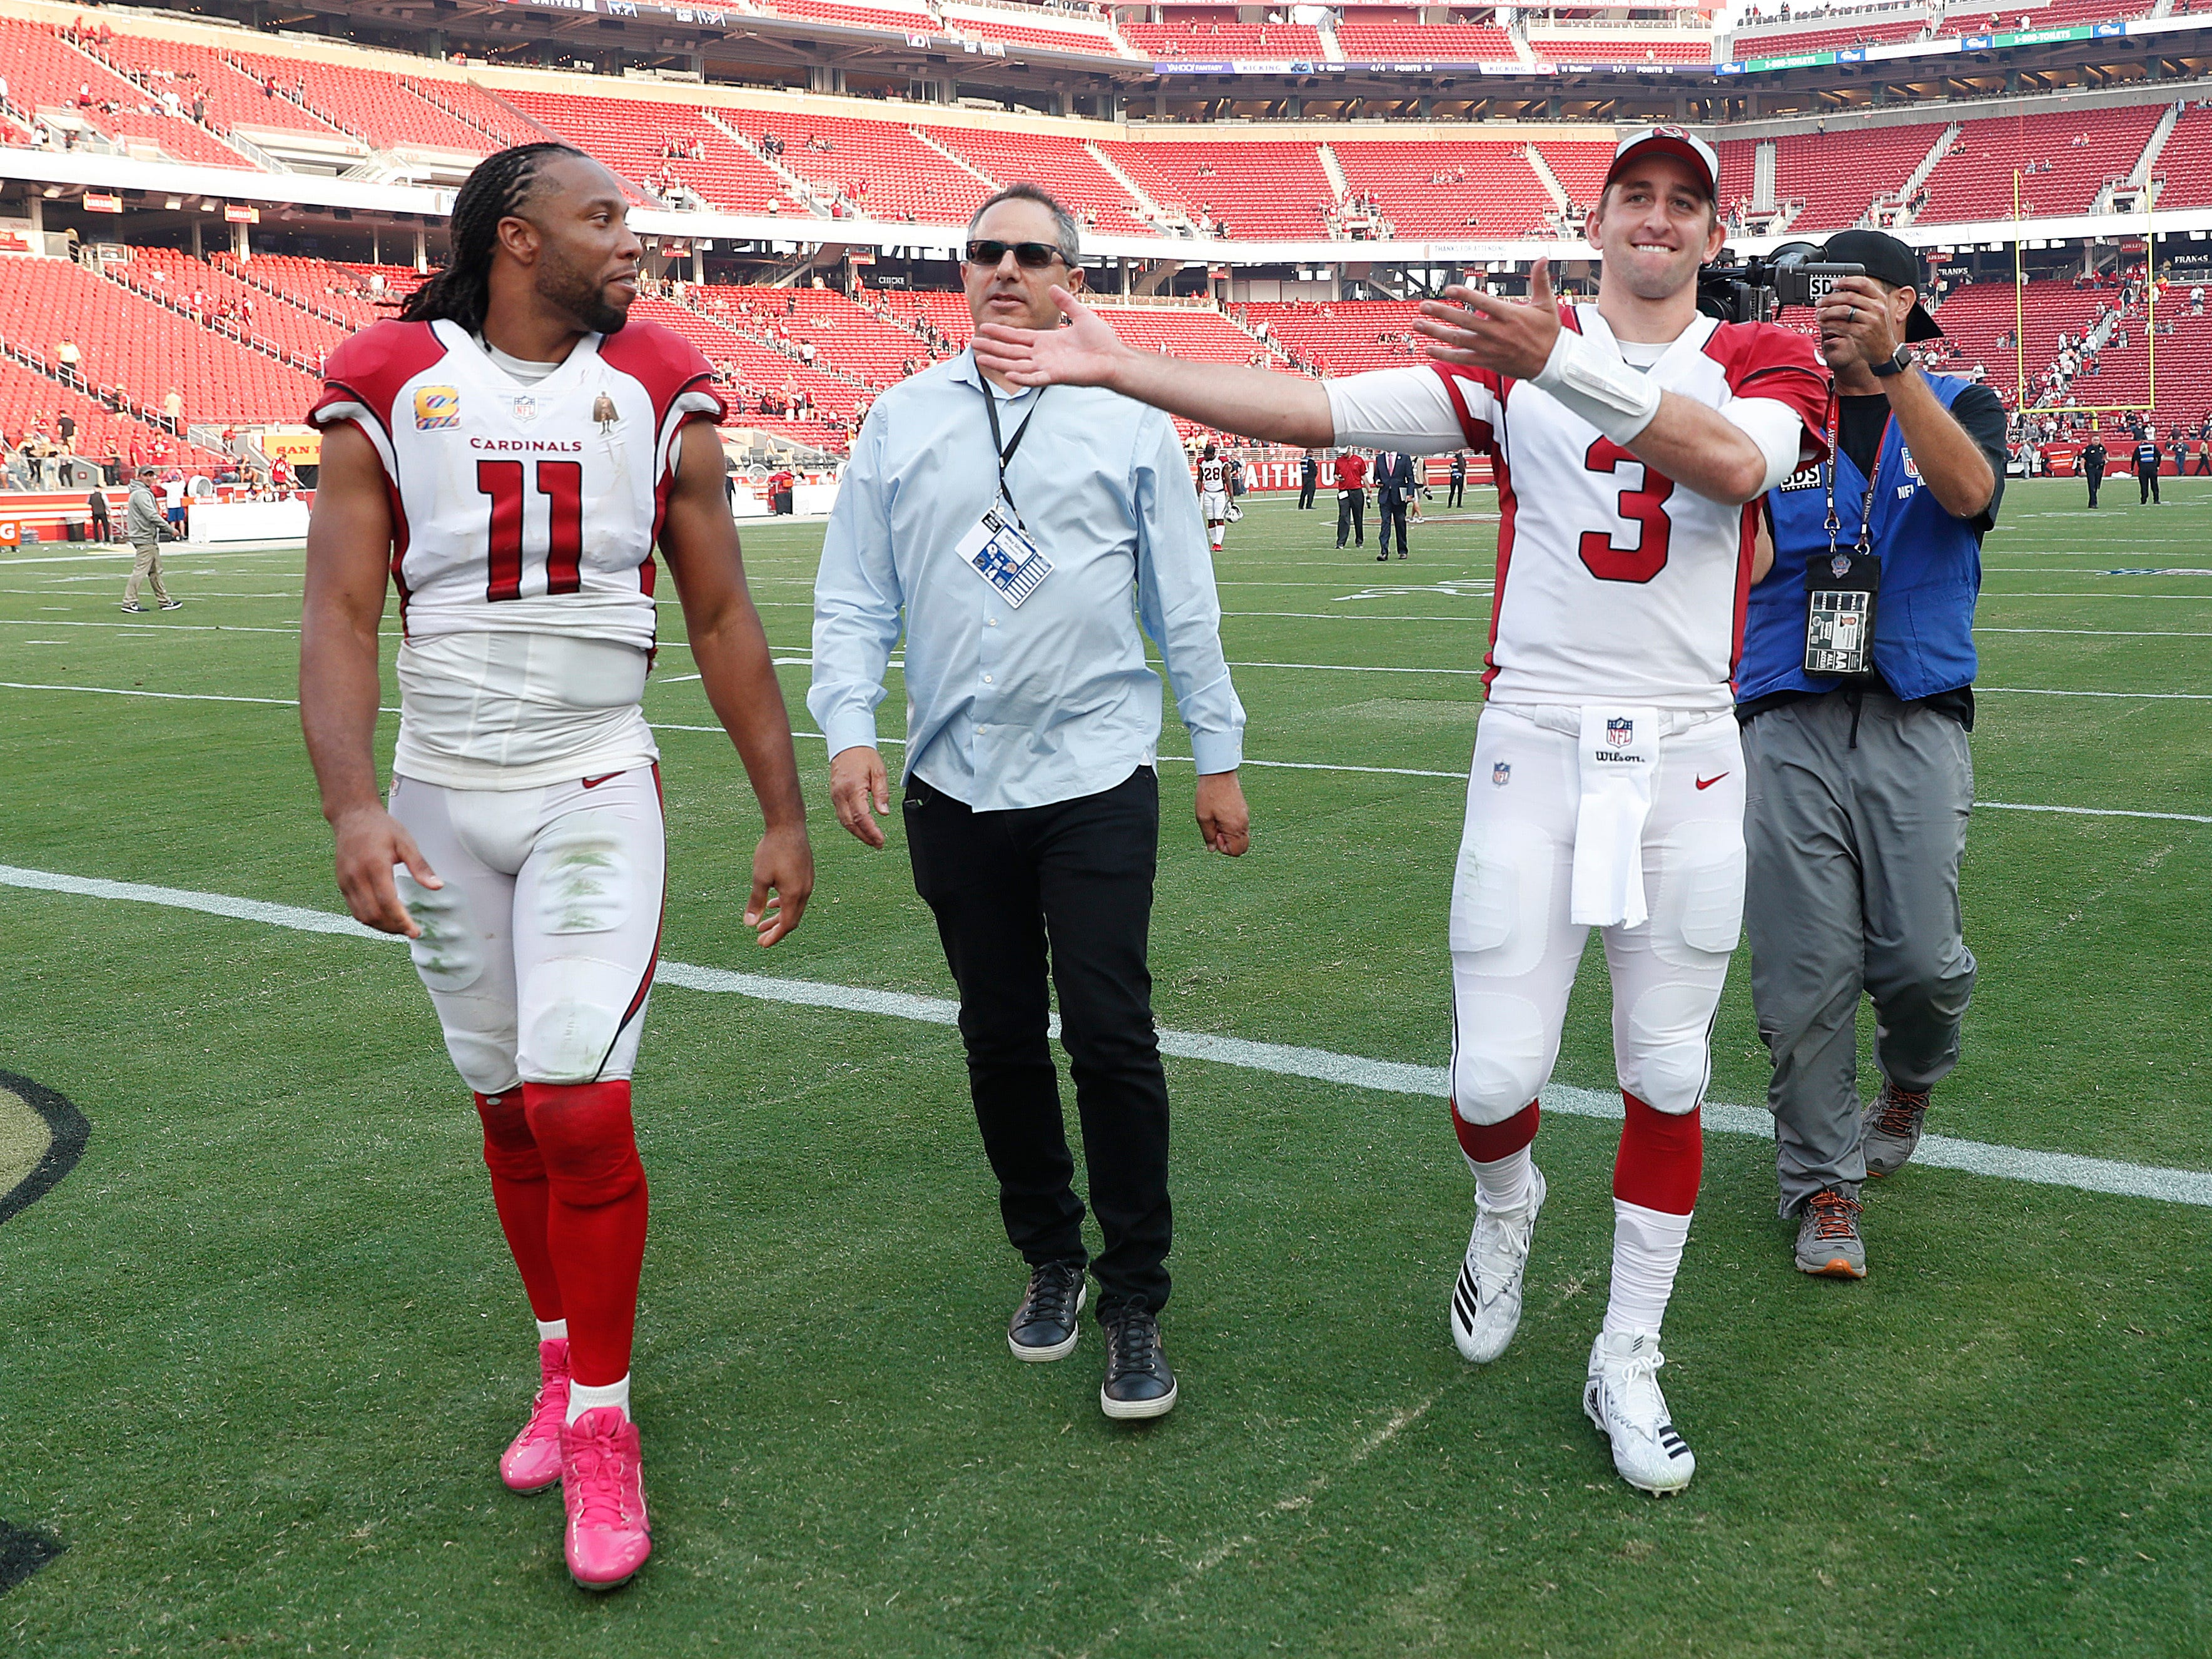 Arizona Cardinals wide receiver Larry Fitzgerald (11) and quarterback Josh Rosen (3) walk off the field after an NFL football game against the San Francisco 49ers in Santa Clara, Calif., Sunday, Oct. 7, 2018.